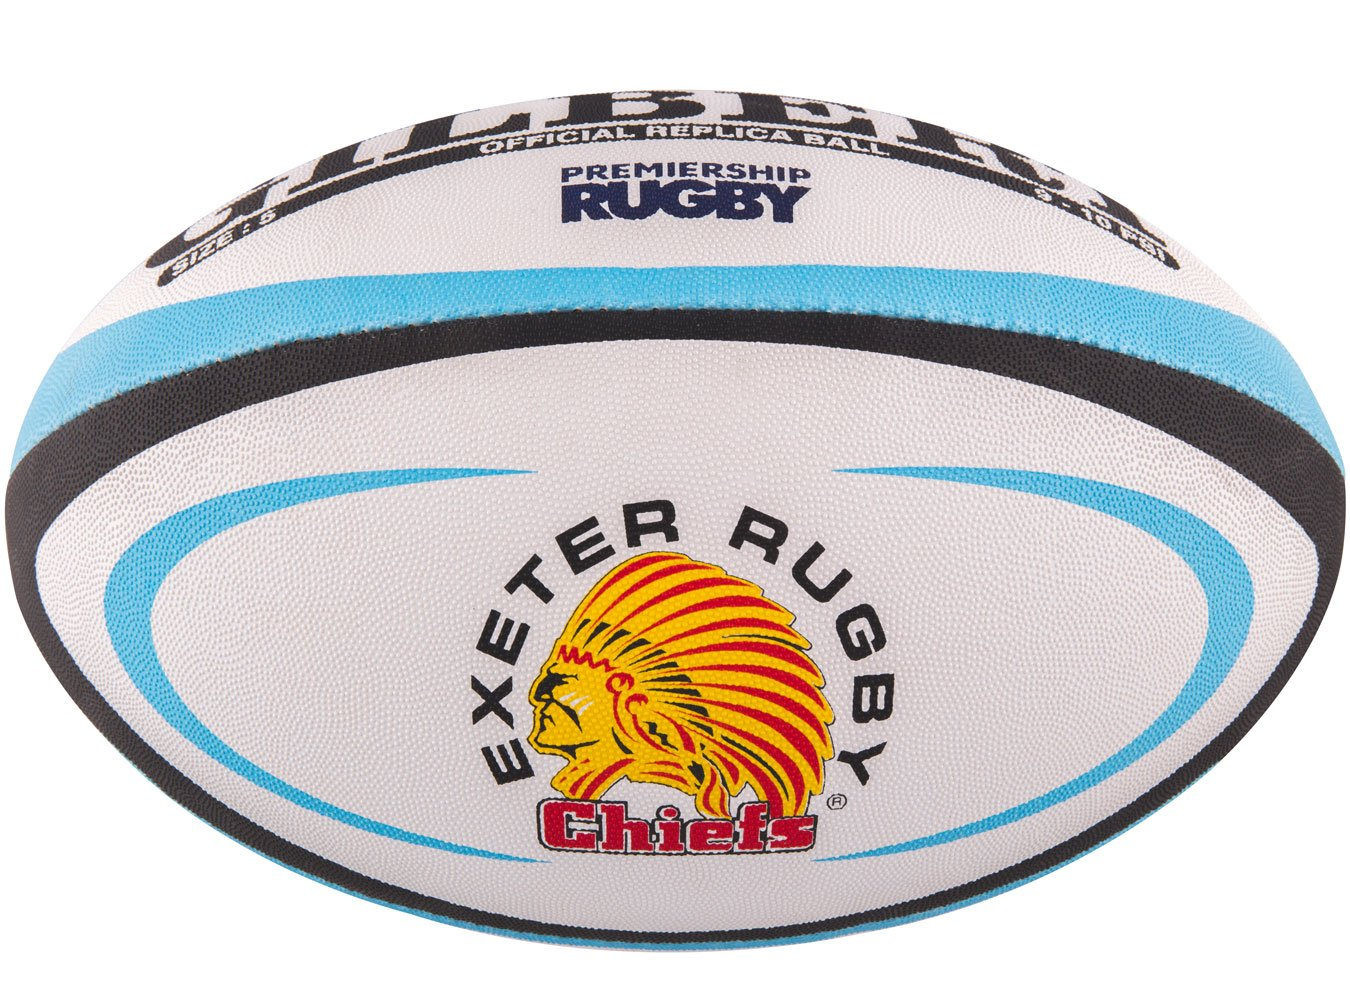 GILBERT Ballon de rugby REPLICA - Exeter - Taille Mini 5024686286867